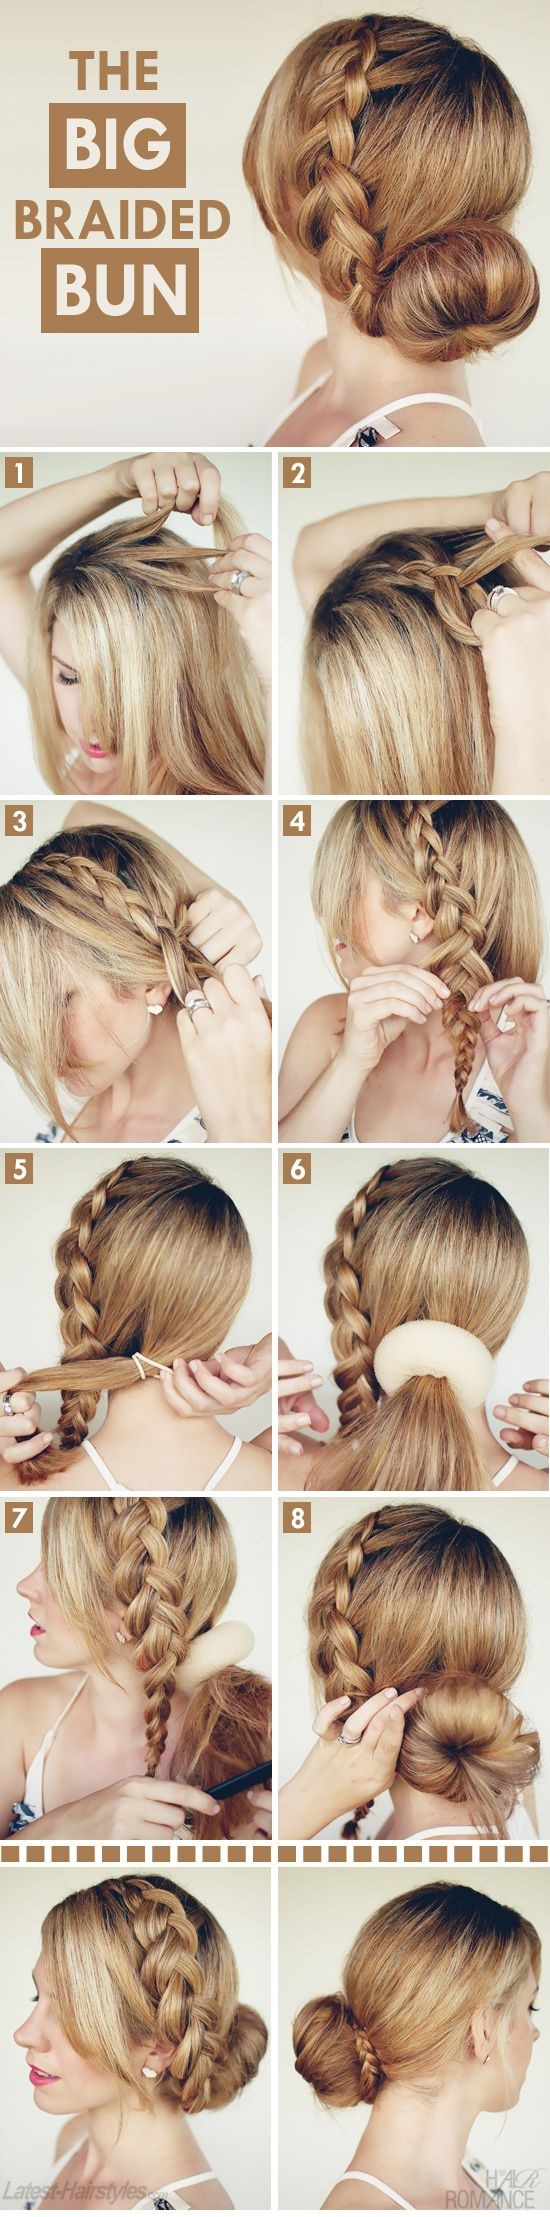 XV hairstyle9